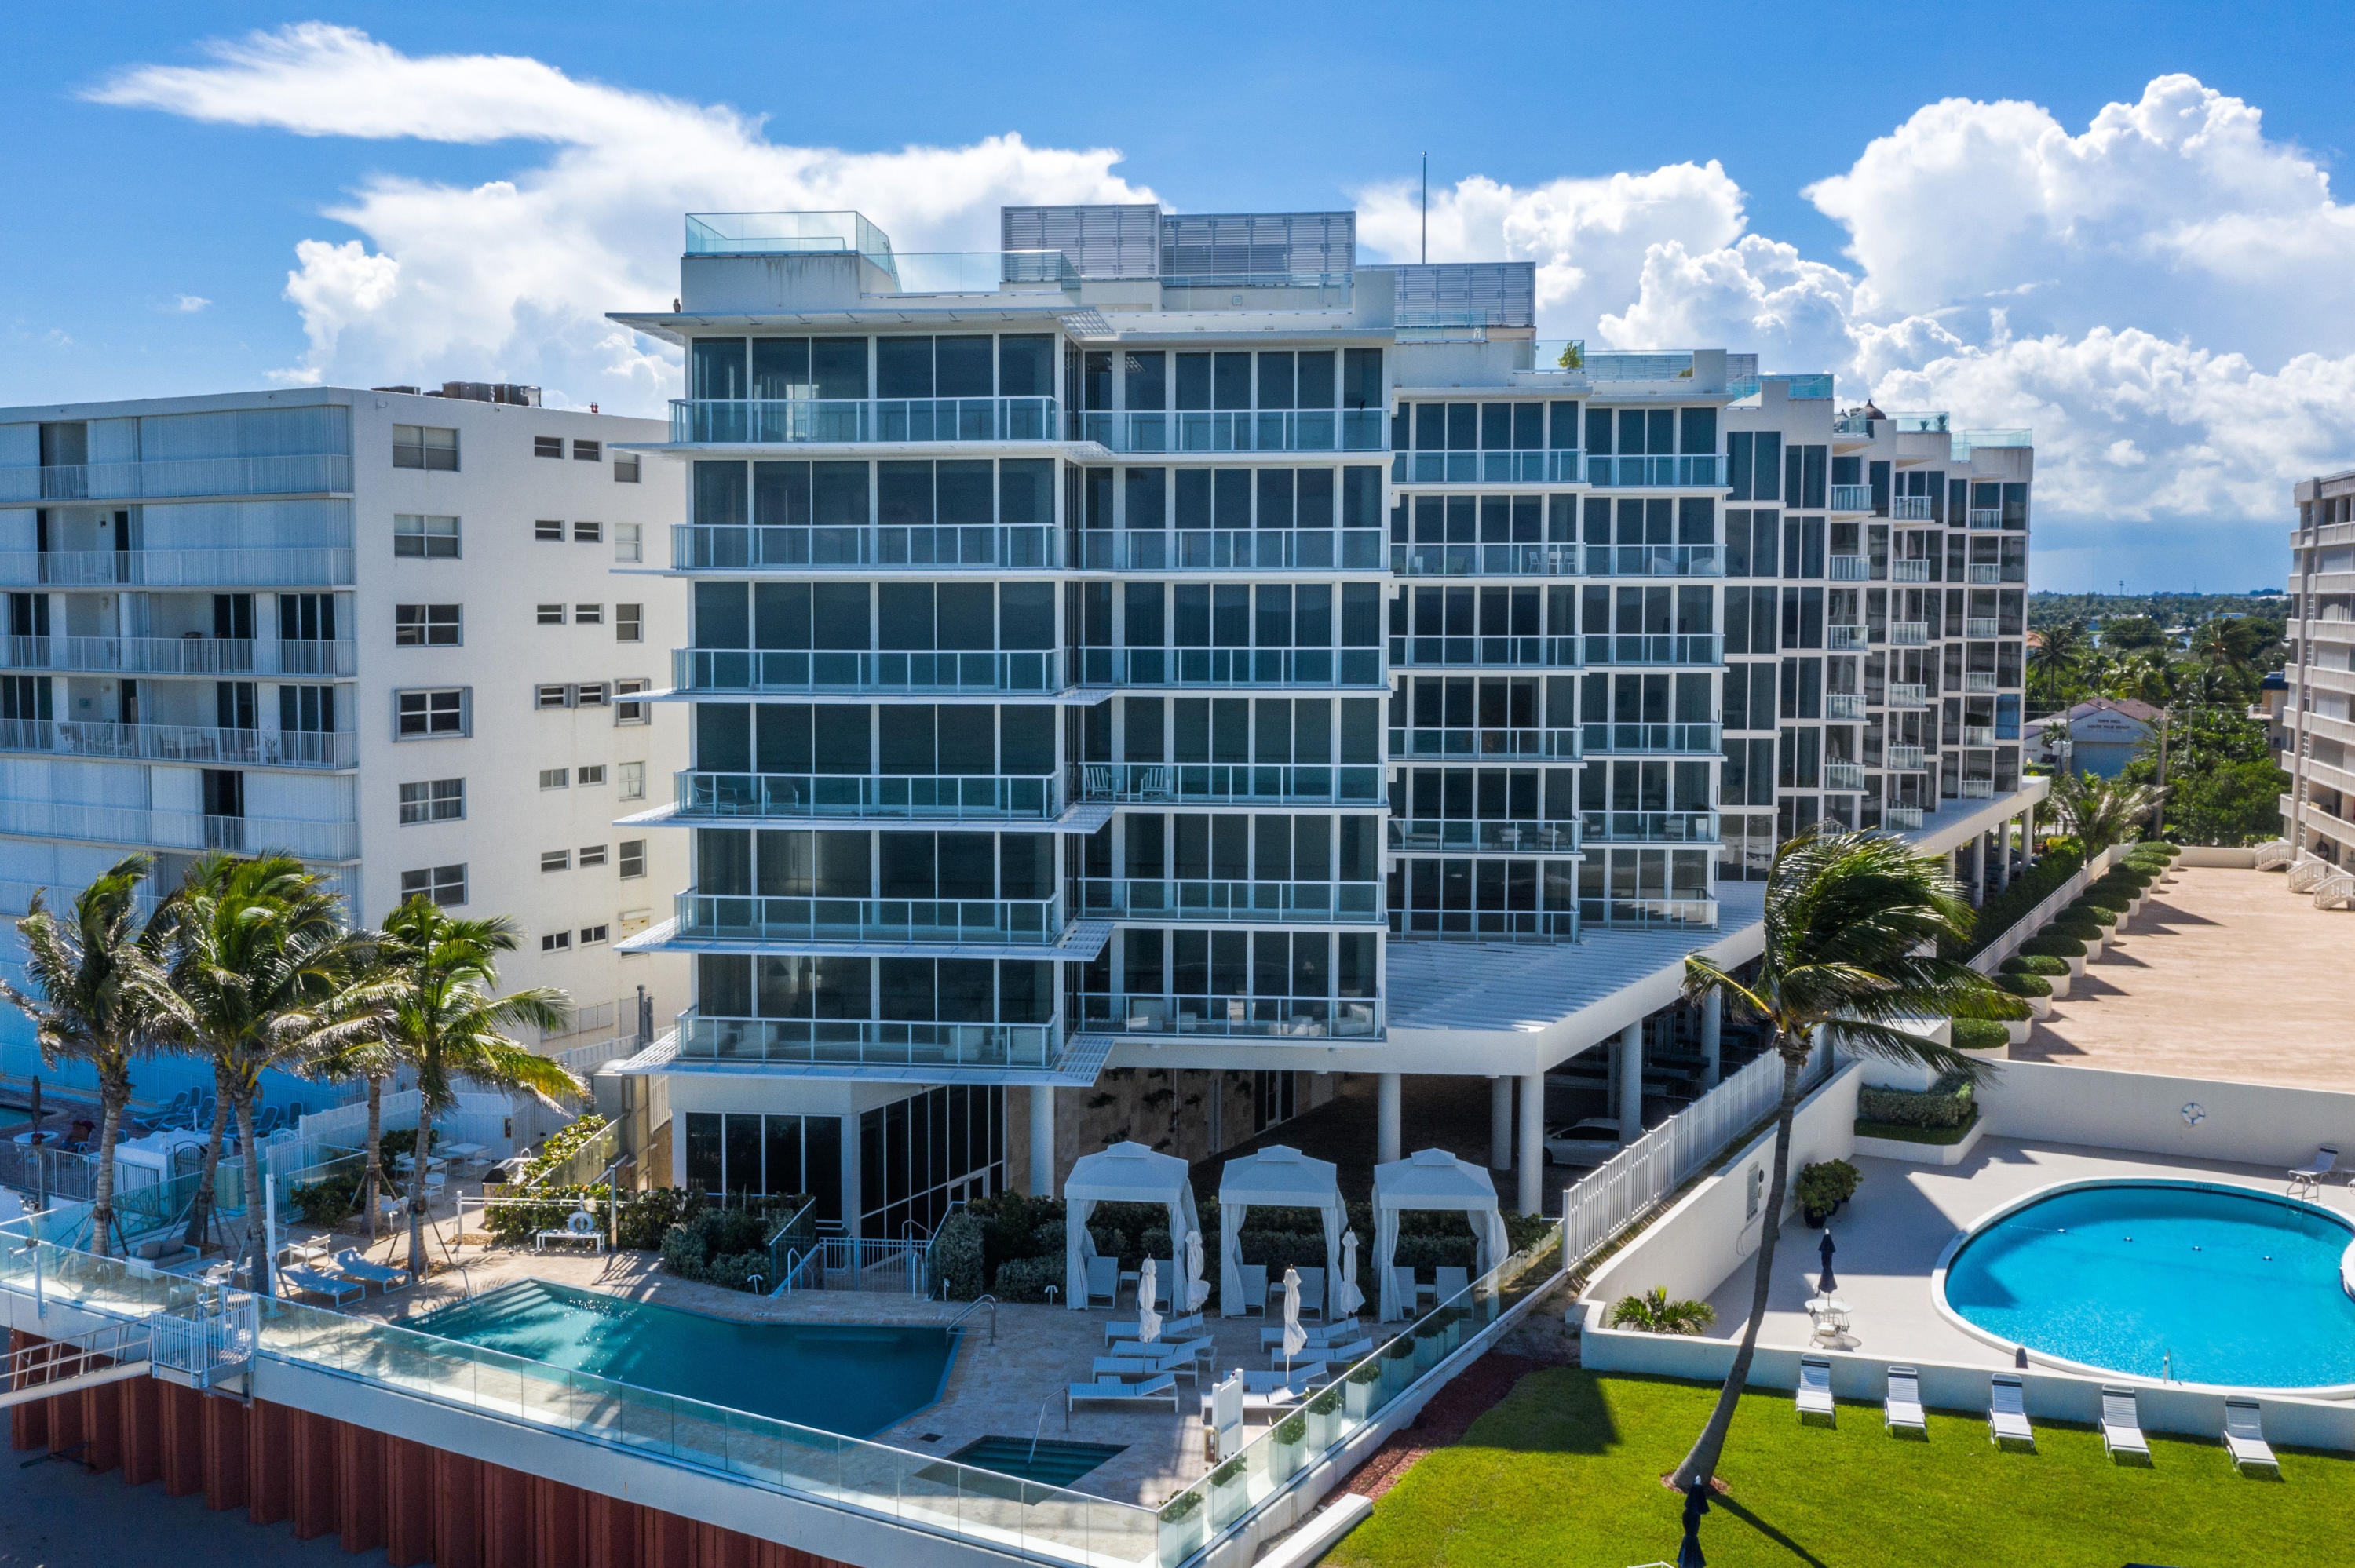 3550 South Ocean is a NEW CONSTRUCTION Luxury Boutique building directly on the Ocean. Large Spacious 3 BD/3BA residences. Private entry foyers and elevators opening to your home with high ceilings, floor to ceiling glass, gas range, and all high end finishes. The 3550 Community is dedicated to a first class lifestyle offering unparelled amenities including a beautiful Salt water pool on the ocean, fitness studio, 2 parking places and private concierge services. Direct Ocean Community is the best of city living on the sand!